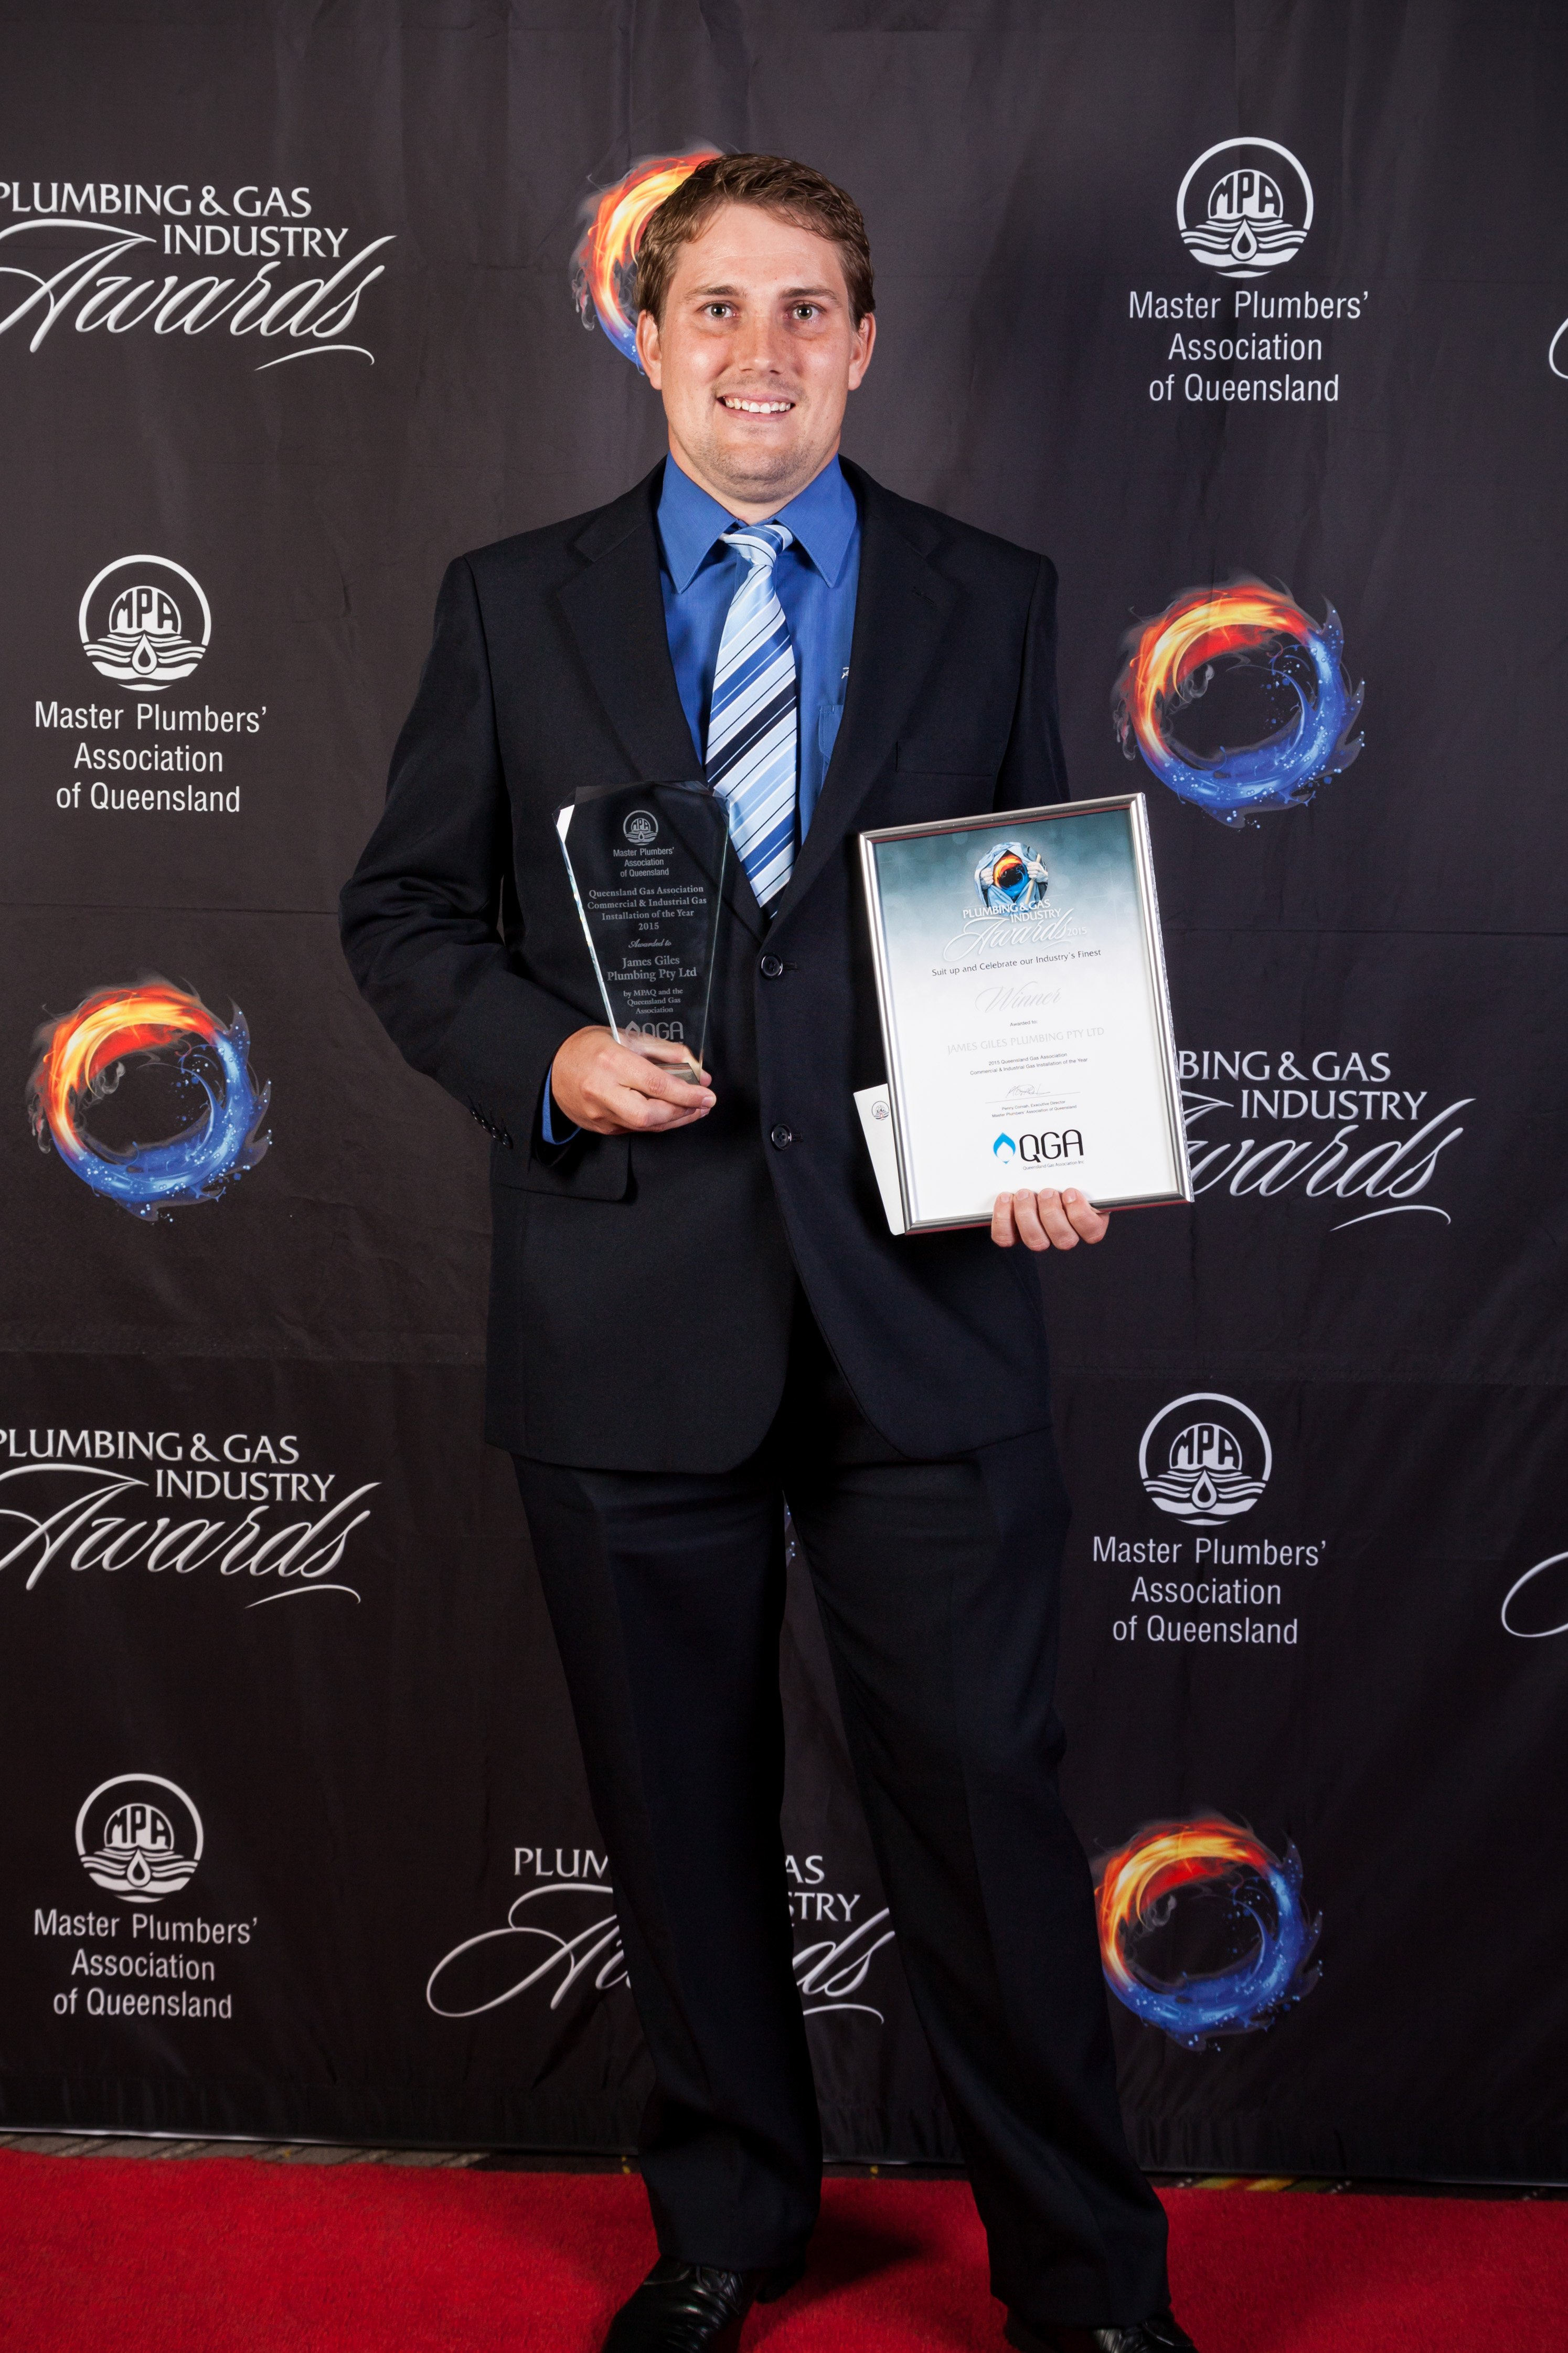 Justin Giles - 2015 Commercial Industrial Gas Install of the Year